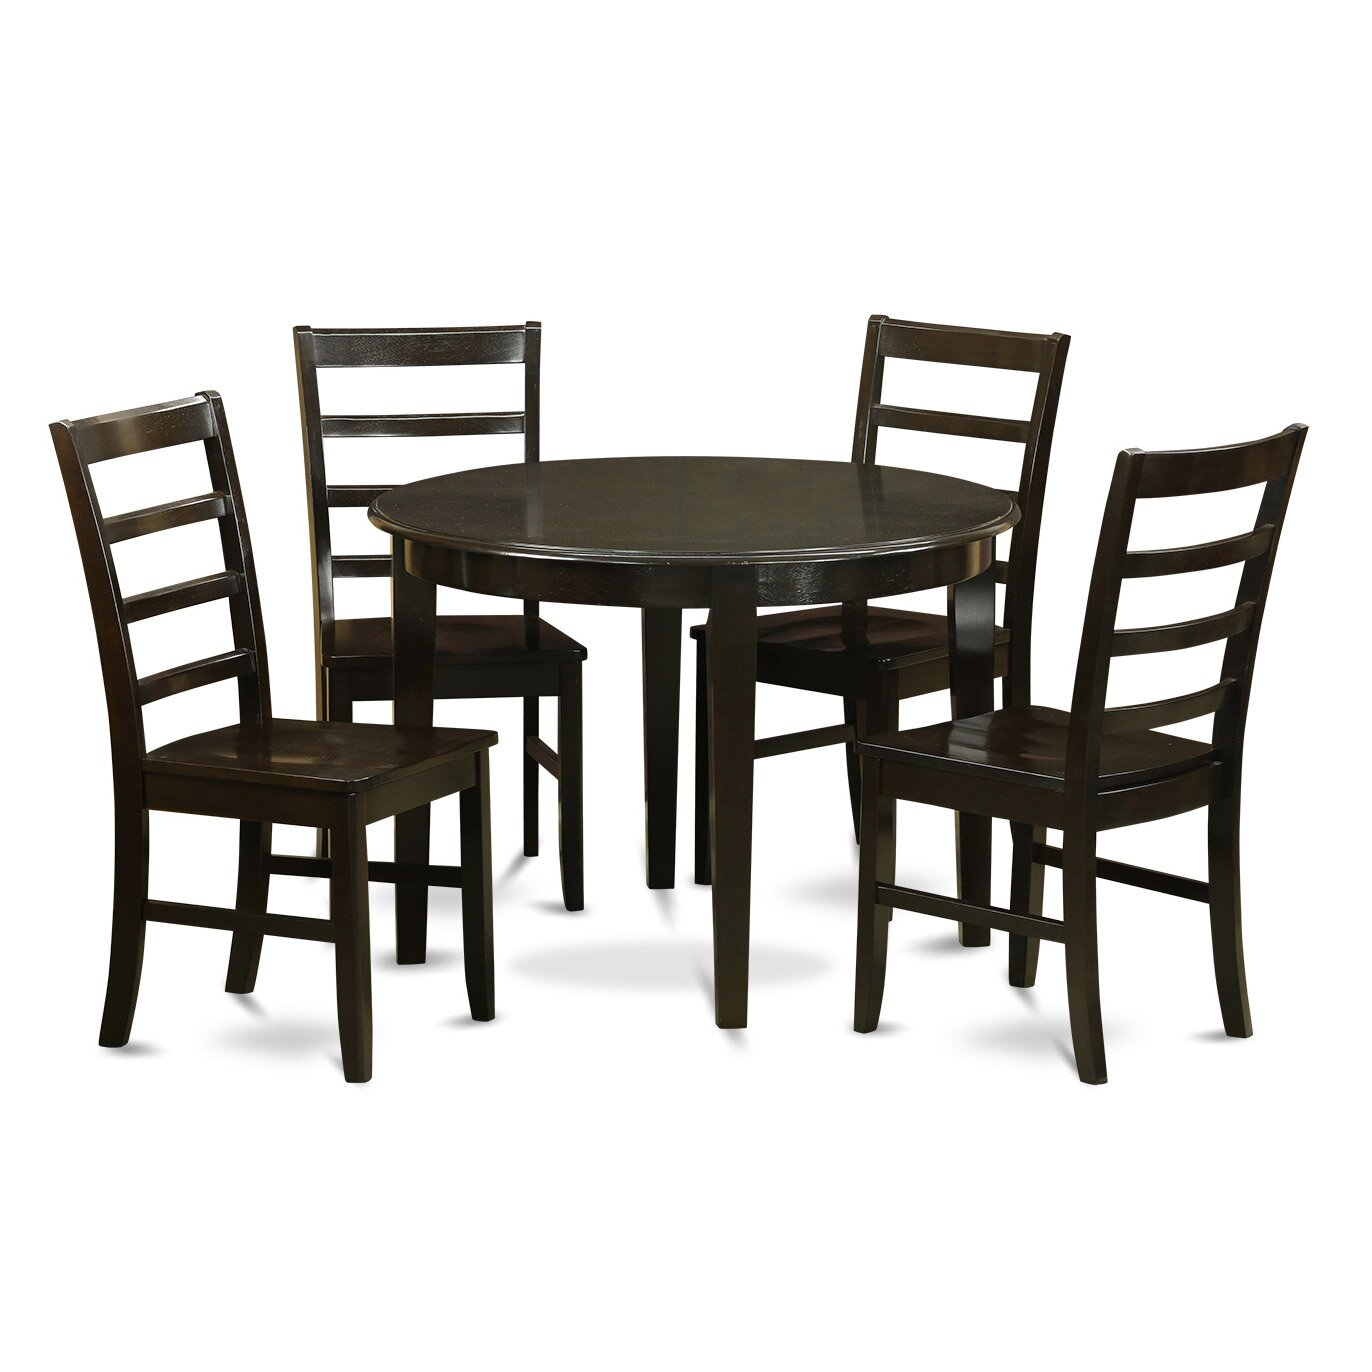 East west boston 5 piece dining set wayfair for 4 piece dining table set